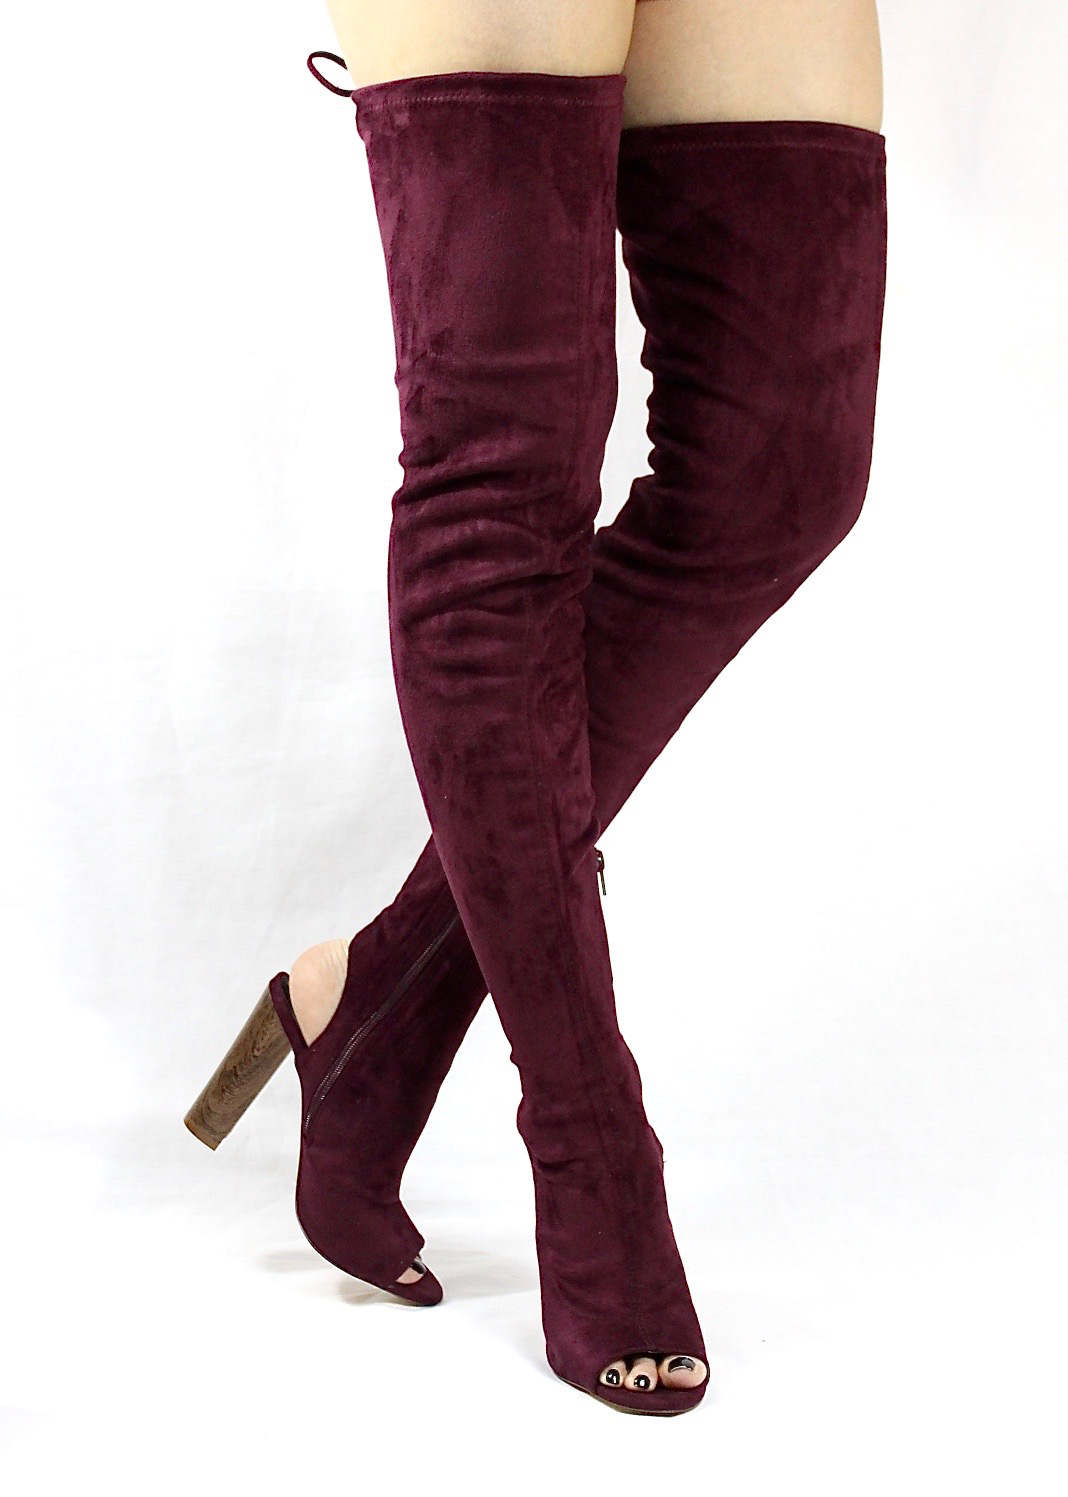 Liliana Sage-44 Plum Over the Knee Thigh High Open Toe Boots-4273